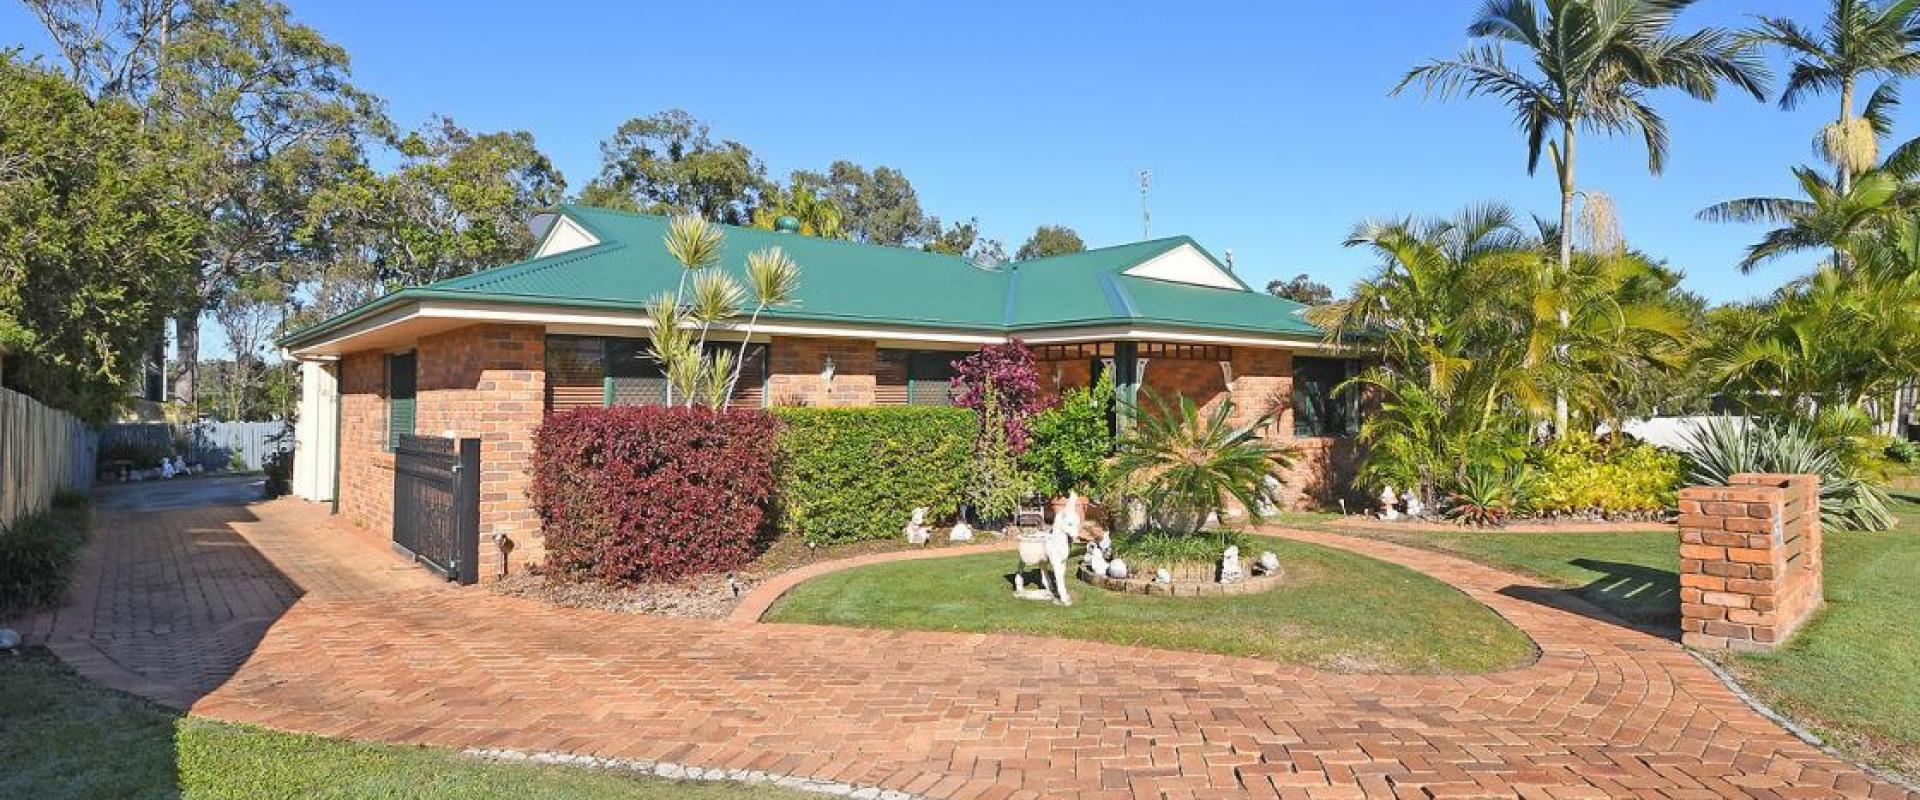 LARGE TRIPLE SHED, AMPLE PARKING, SOUGHT AFTER CENTRAL LOCATED SUBURB, ADJACENT TO DUGGAN CONSERVATION PARK AND SPORTING RECREATIONAL GROUND.